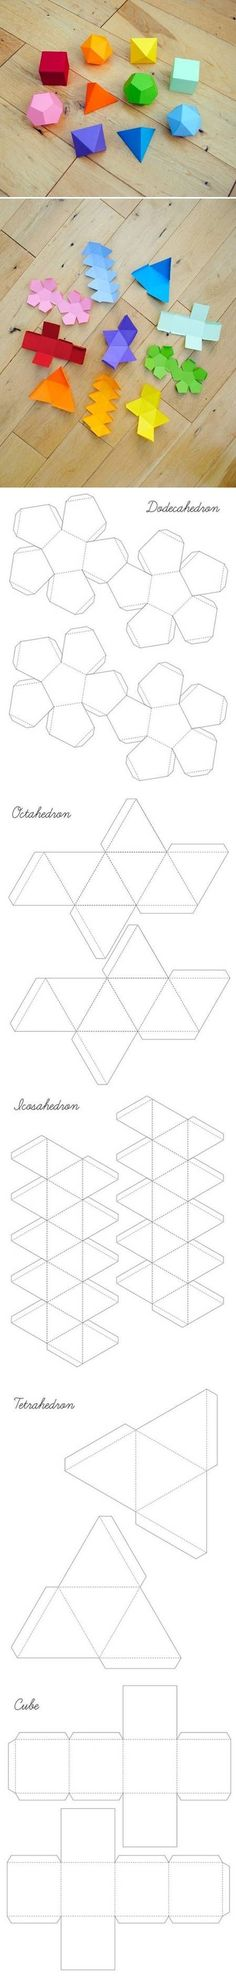 DIY Geometrical Box Templates DIY Geometrical Box Templates